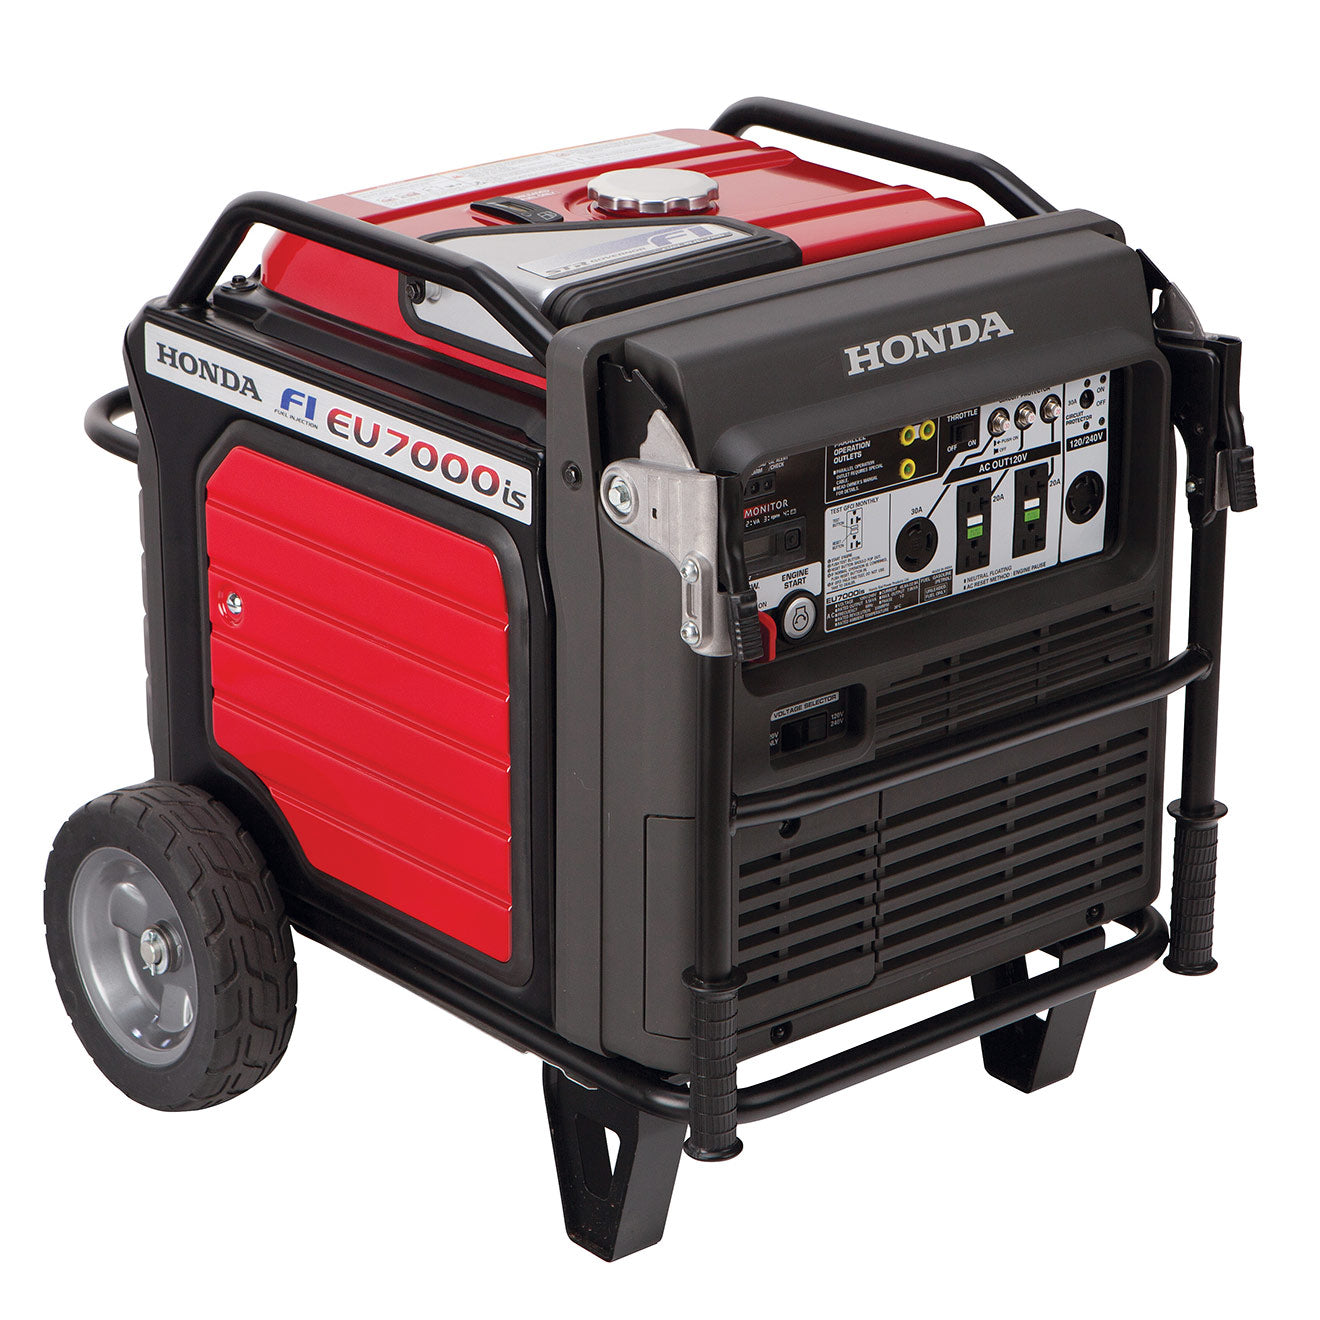 Honda - EU7000iS - 7000W Generator